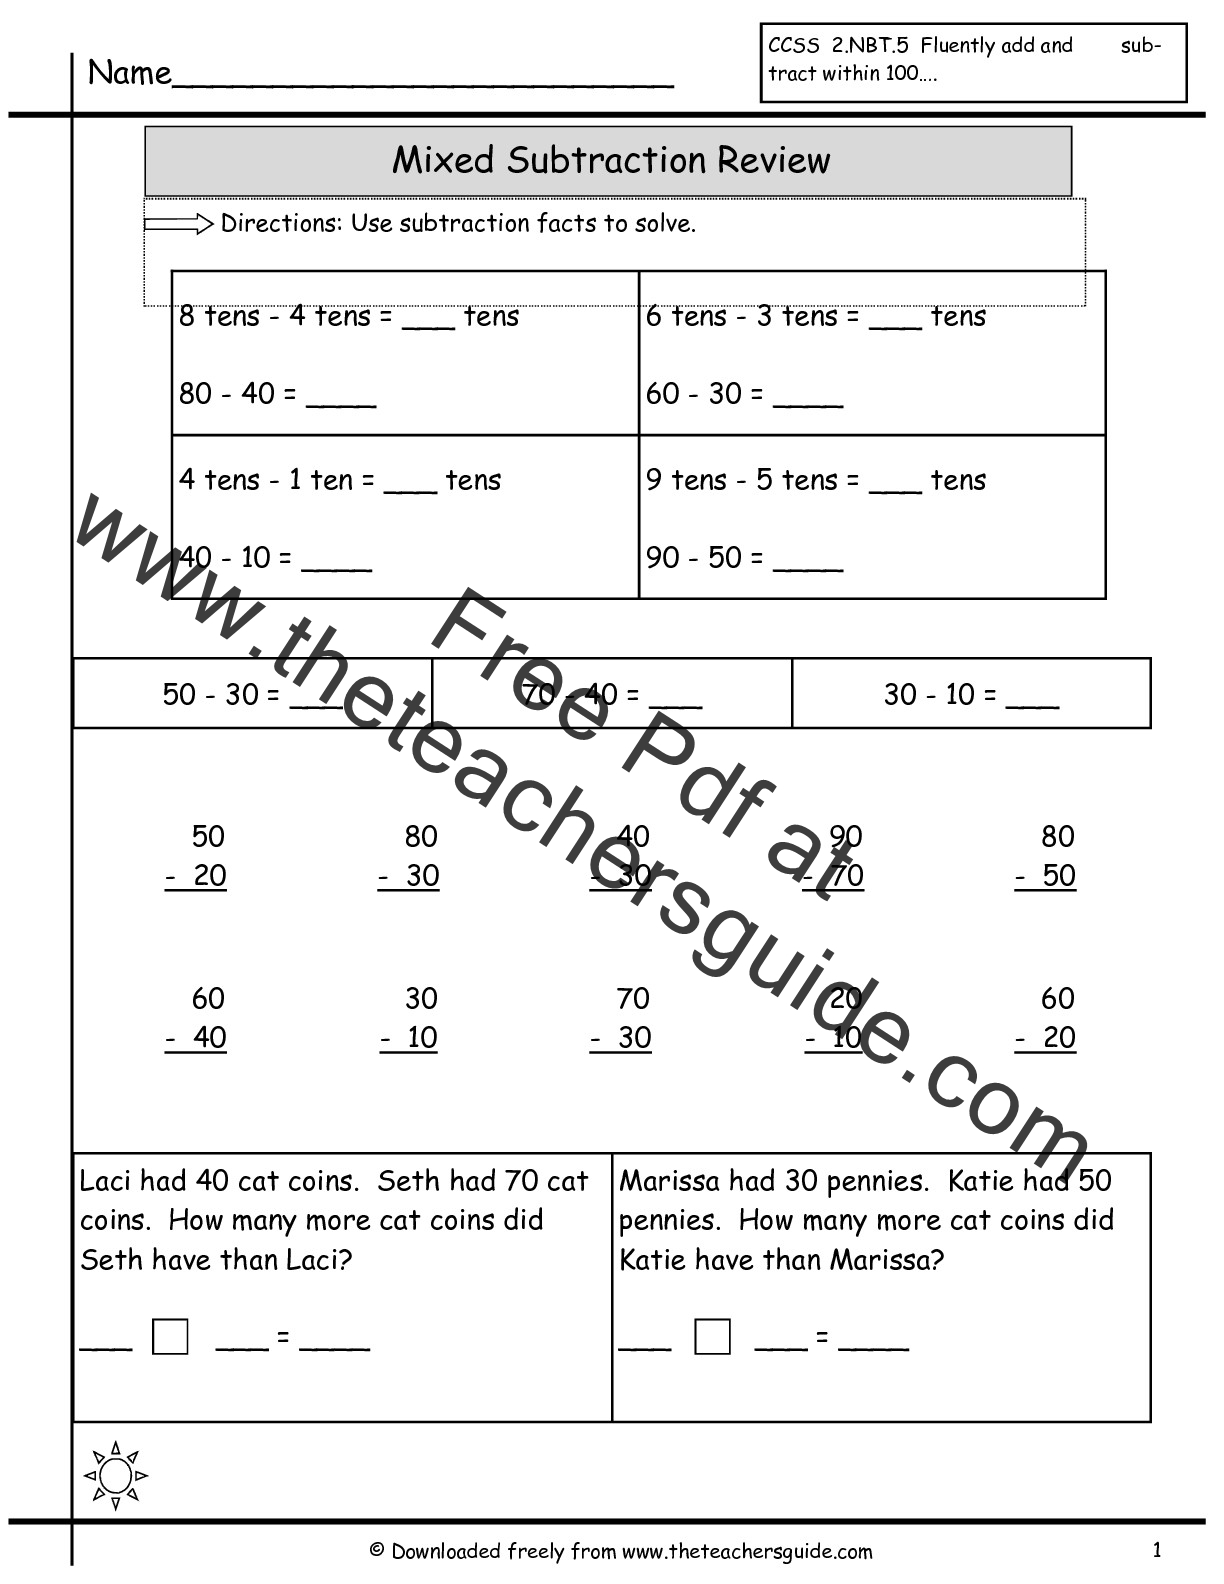 Single Digit Addition Worksheets From The Teacher S Guide